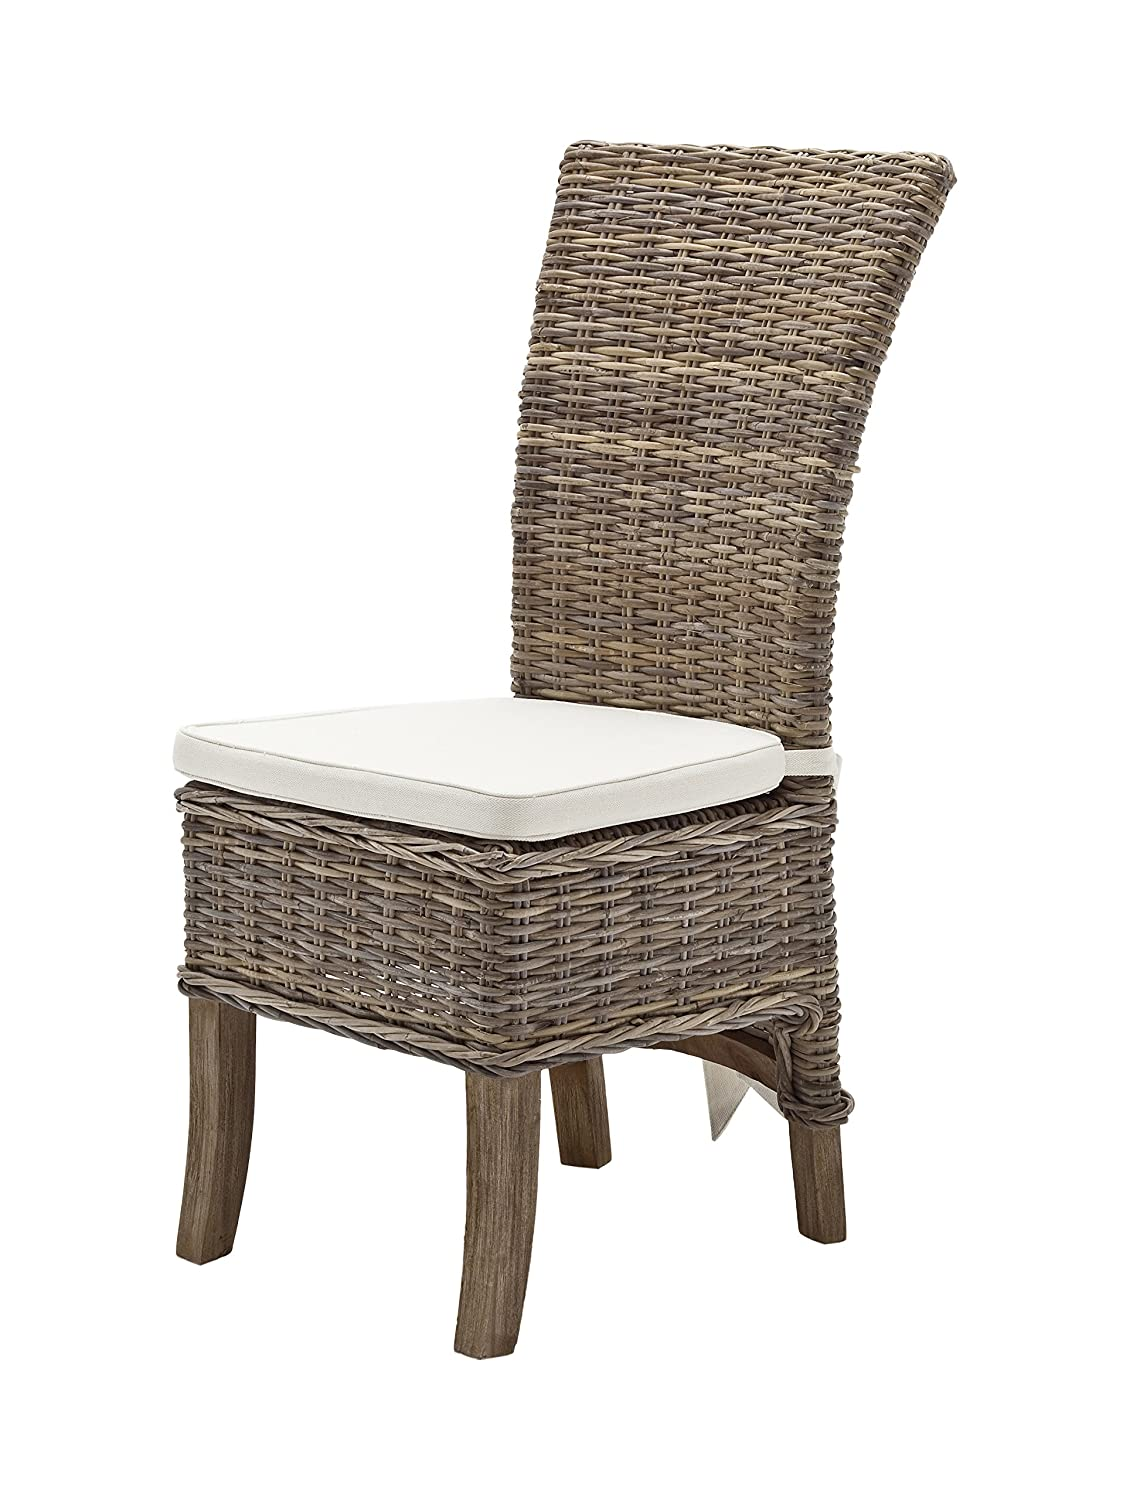 Amazon com novasolo wickerworks salsa natural grey rattan indoor dining chair with cusion set of 2 chairs